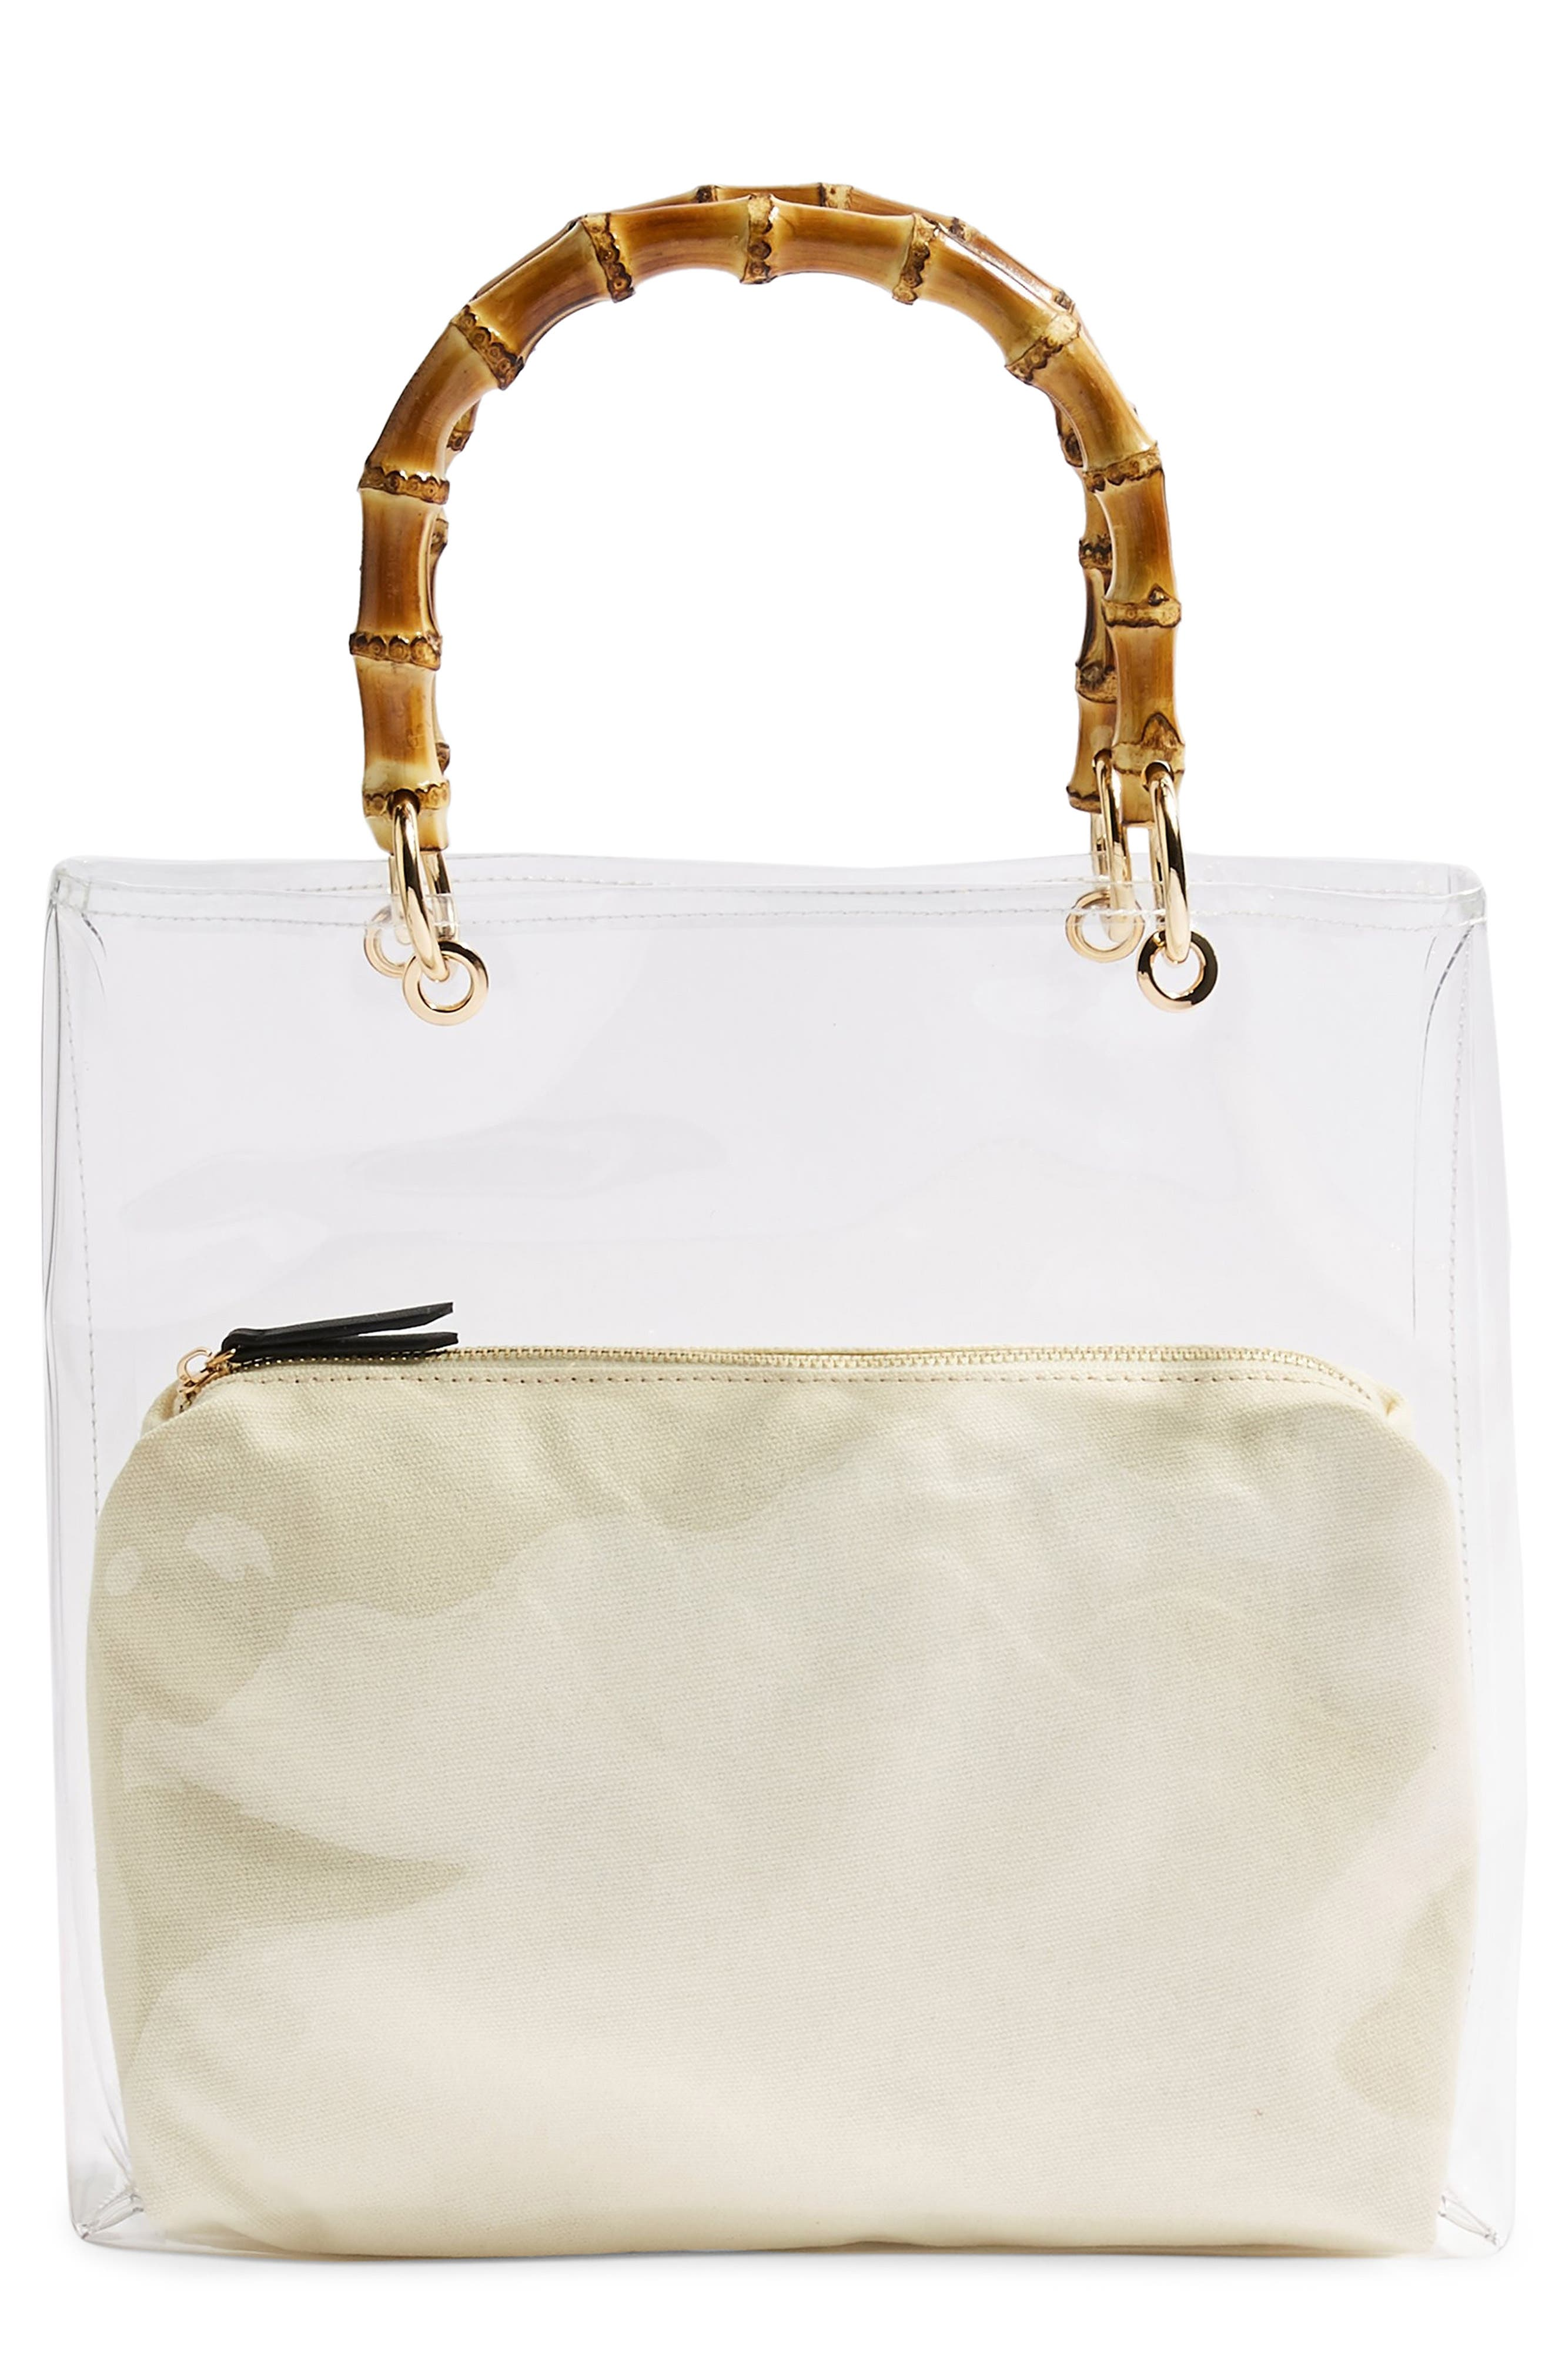 TOPSHOP, Mercy Top Handle Tote Bag, Main thumbnail 1, color, CLEAR